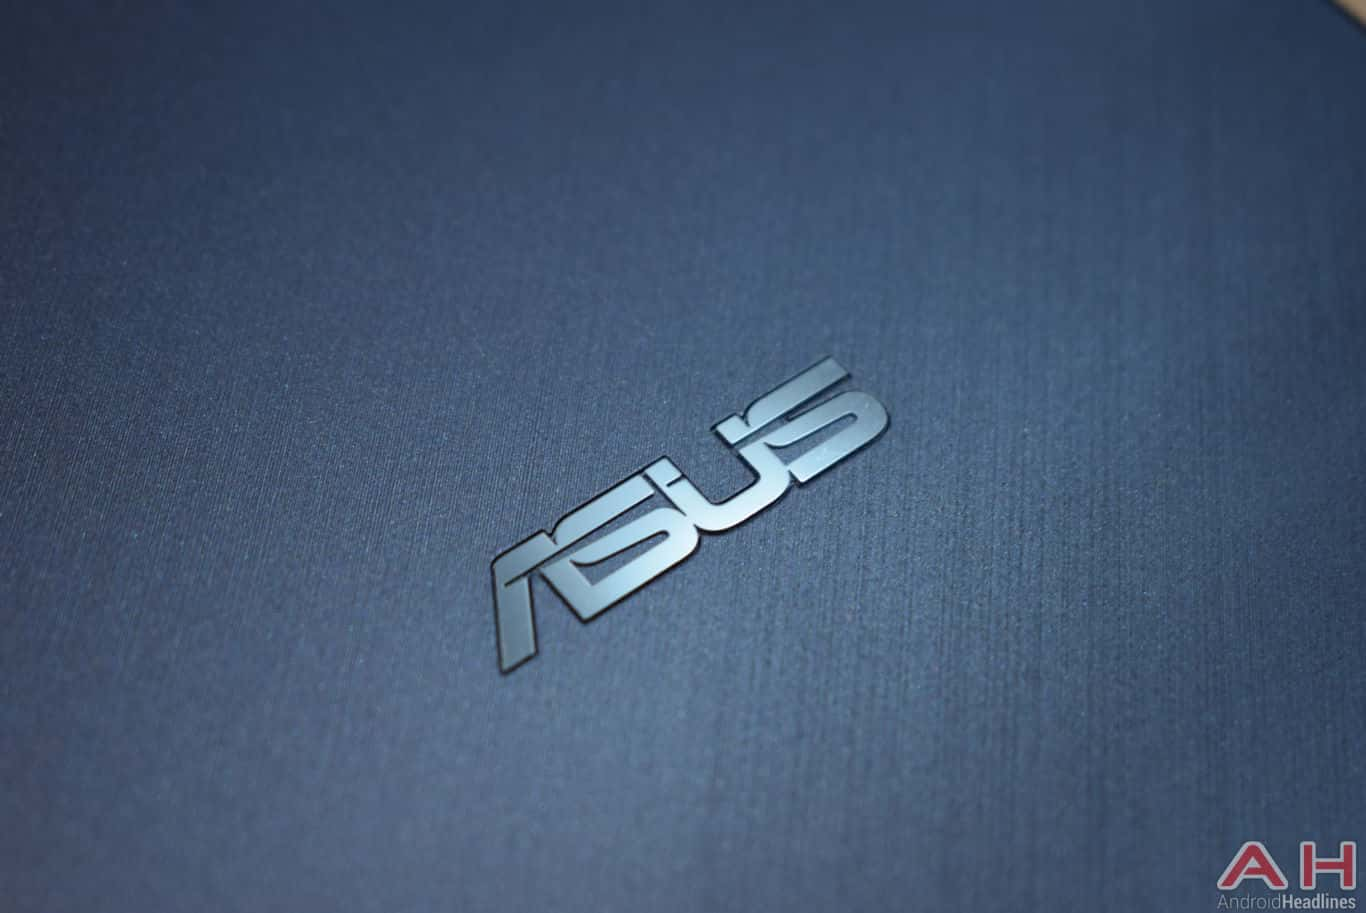 ASUS Chromebox 3 CES 2018 AH 5